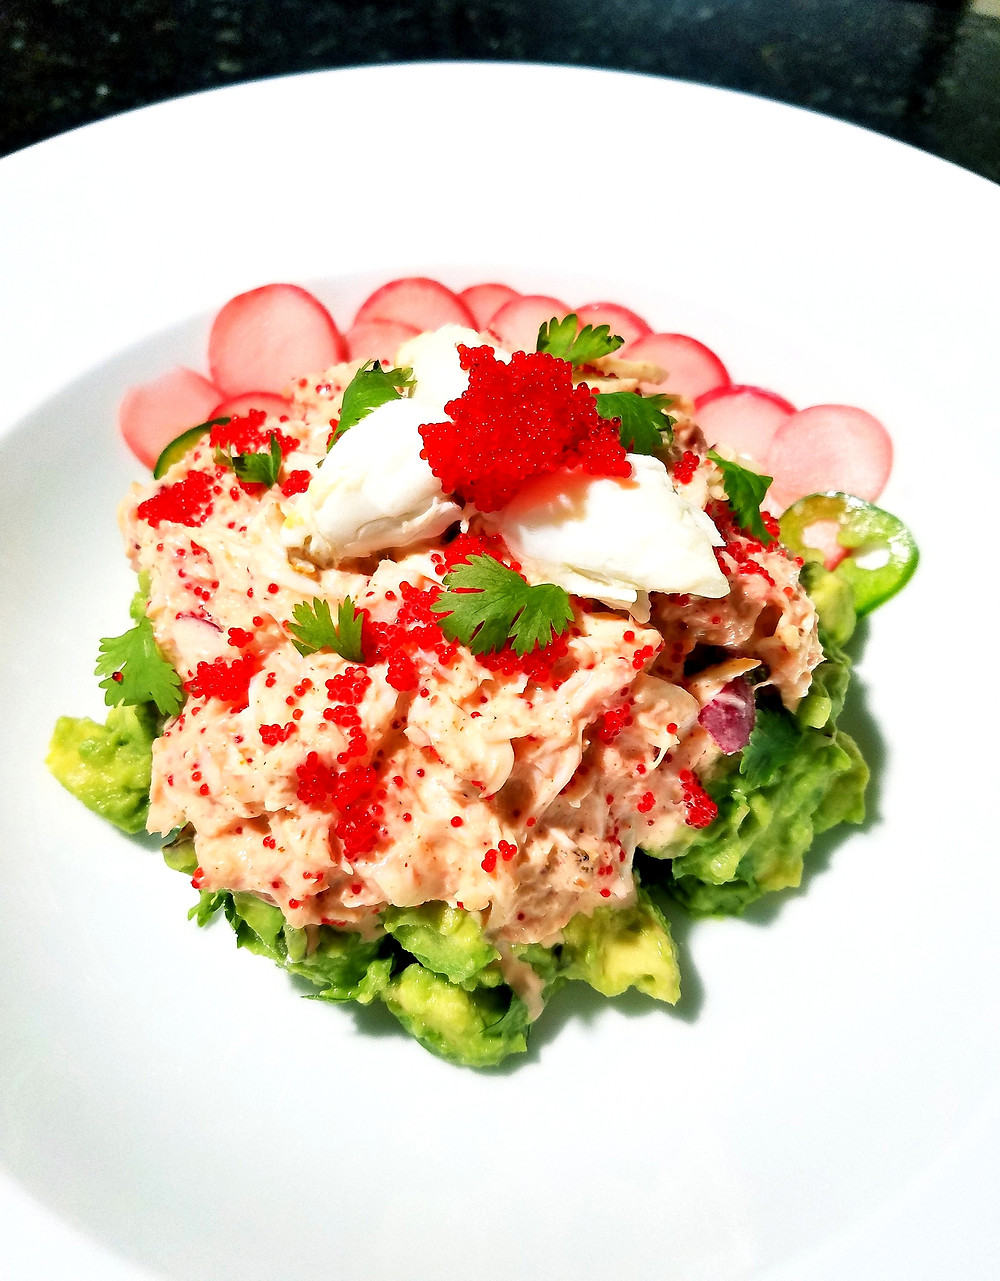 Spicy Crab and Avocado Stack (Gluten-free, soy-free, dairy-free, grain-free)